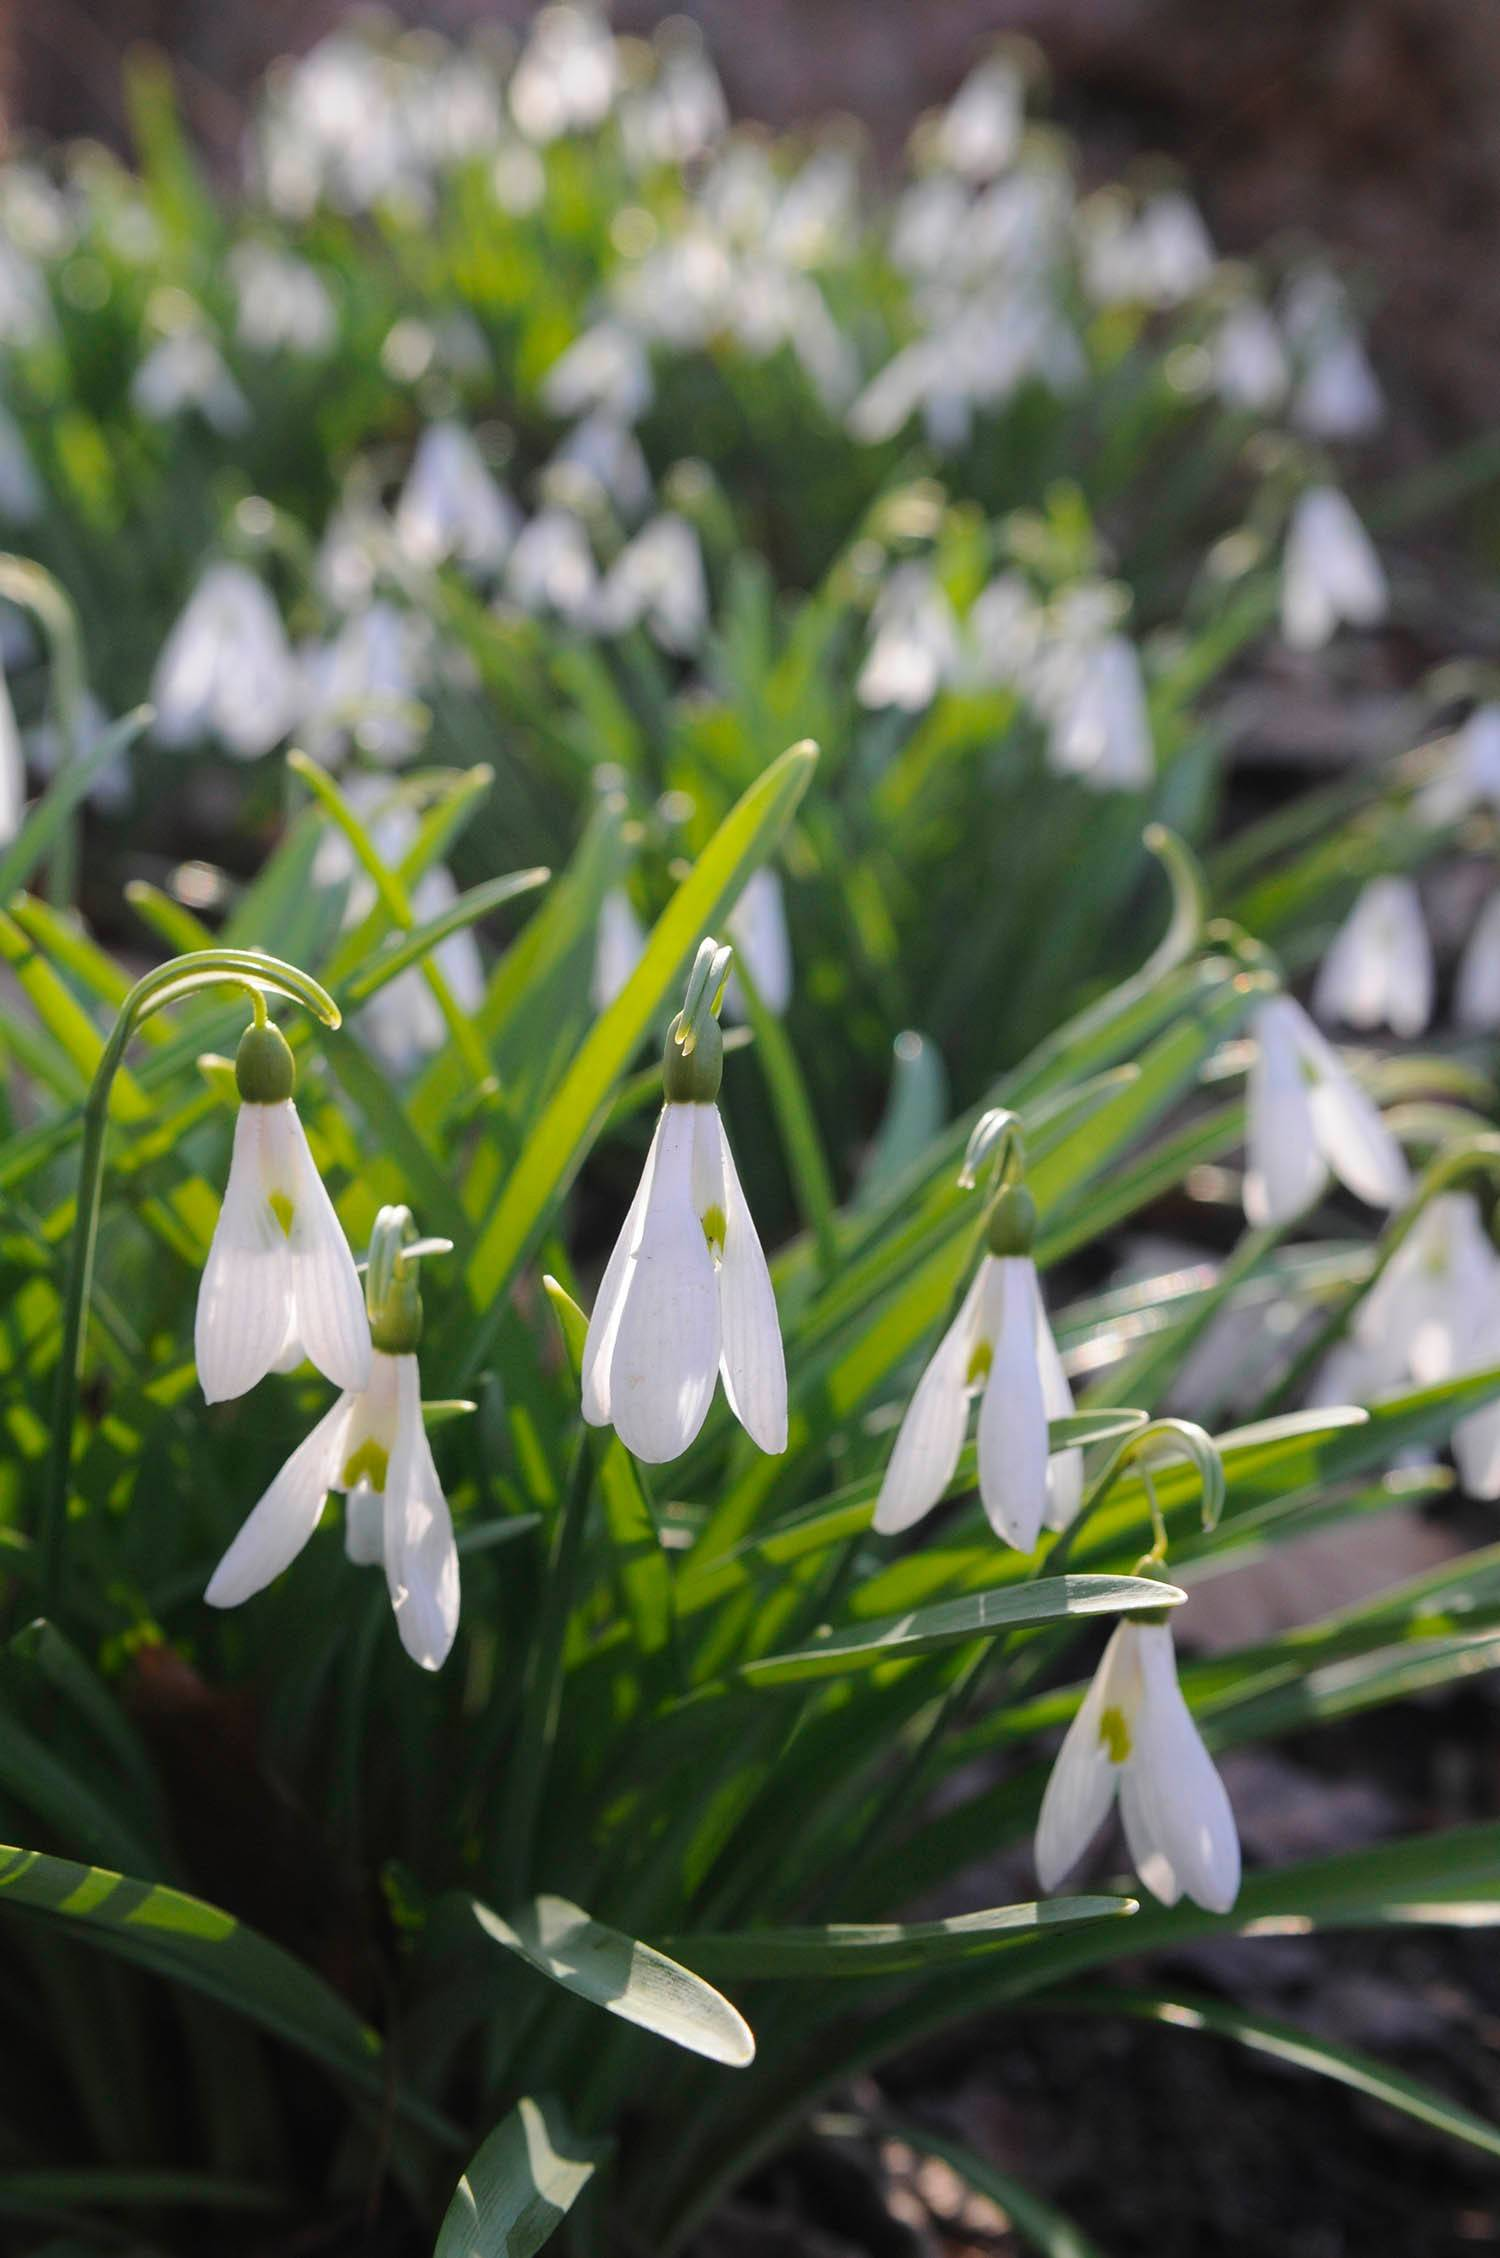 Snowdrops can tolerate a bit of frost. The Chicago Botanic Garden in Glencoe has had these small bulbs as early as late February.